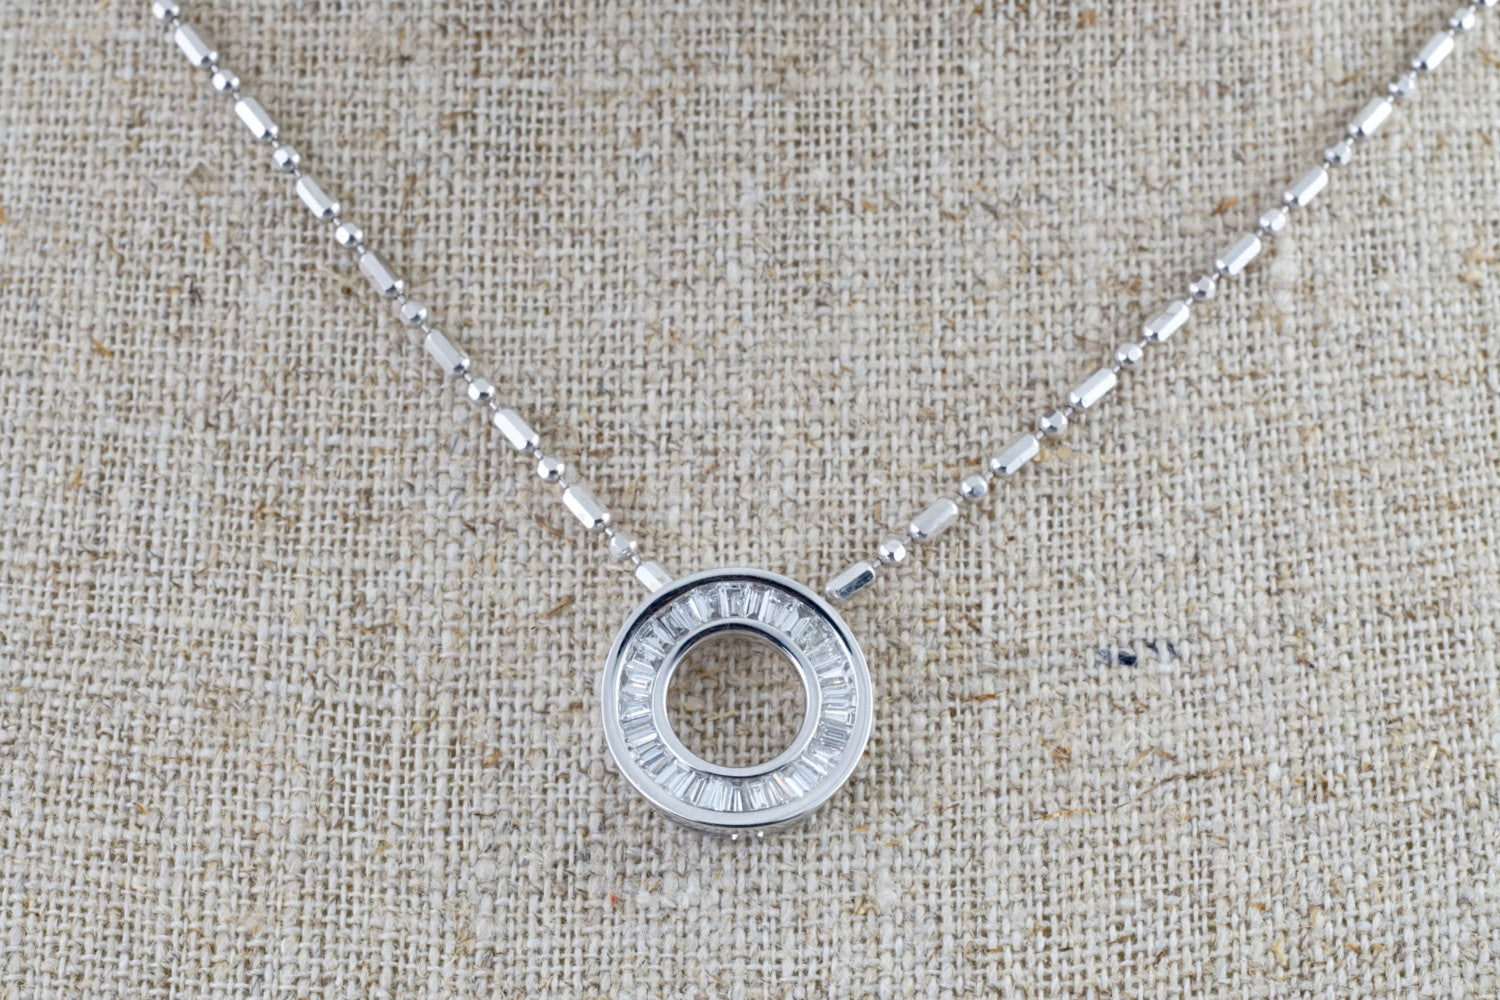 18k White Gold Baguette Slider Circle Disc Disk Diamond Invisible Necklace Pendant Charm